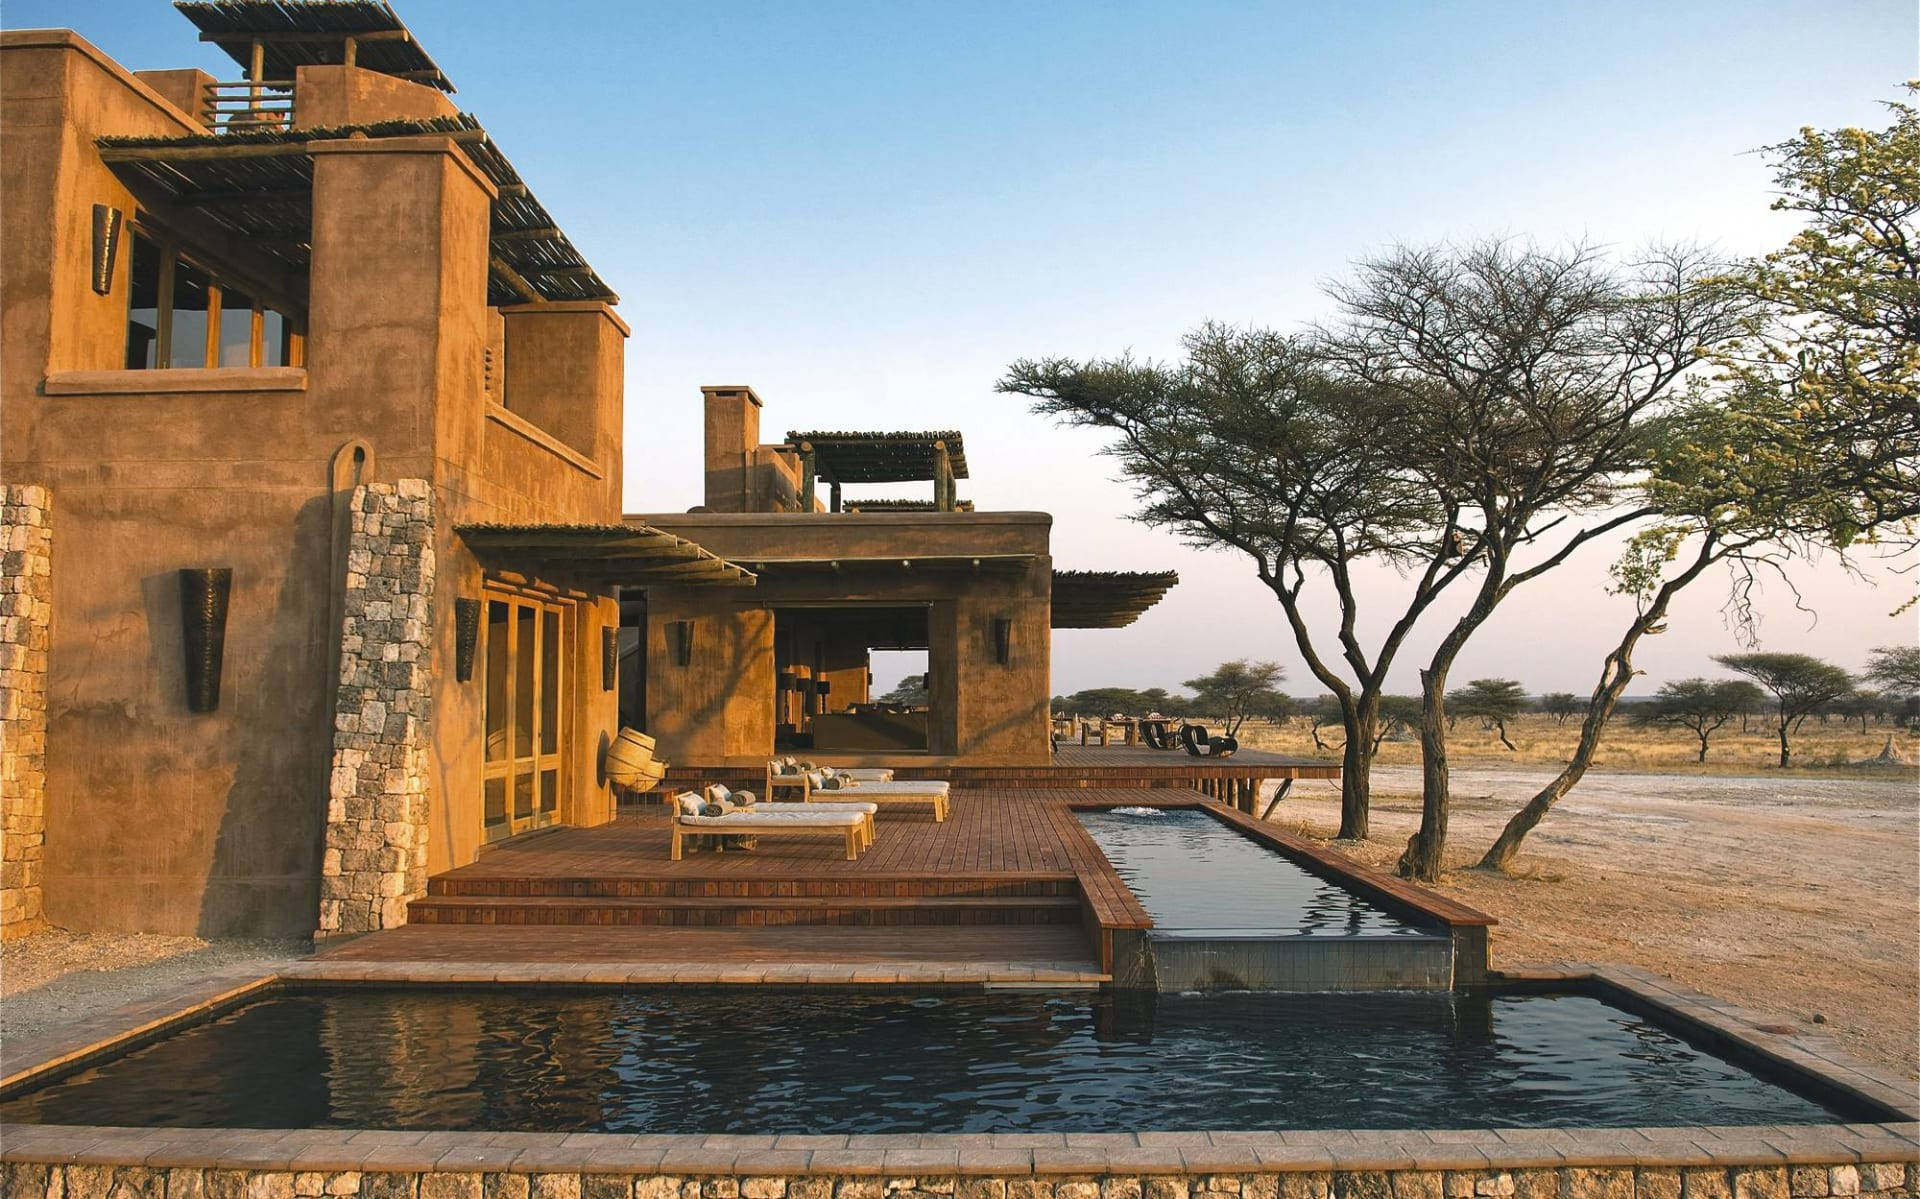 Onguma The Fort in Etosha Nationalpark:  Mokuti Etosha Lodge - The Fort